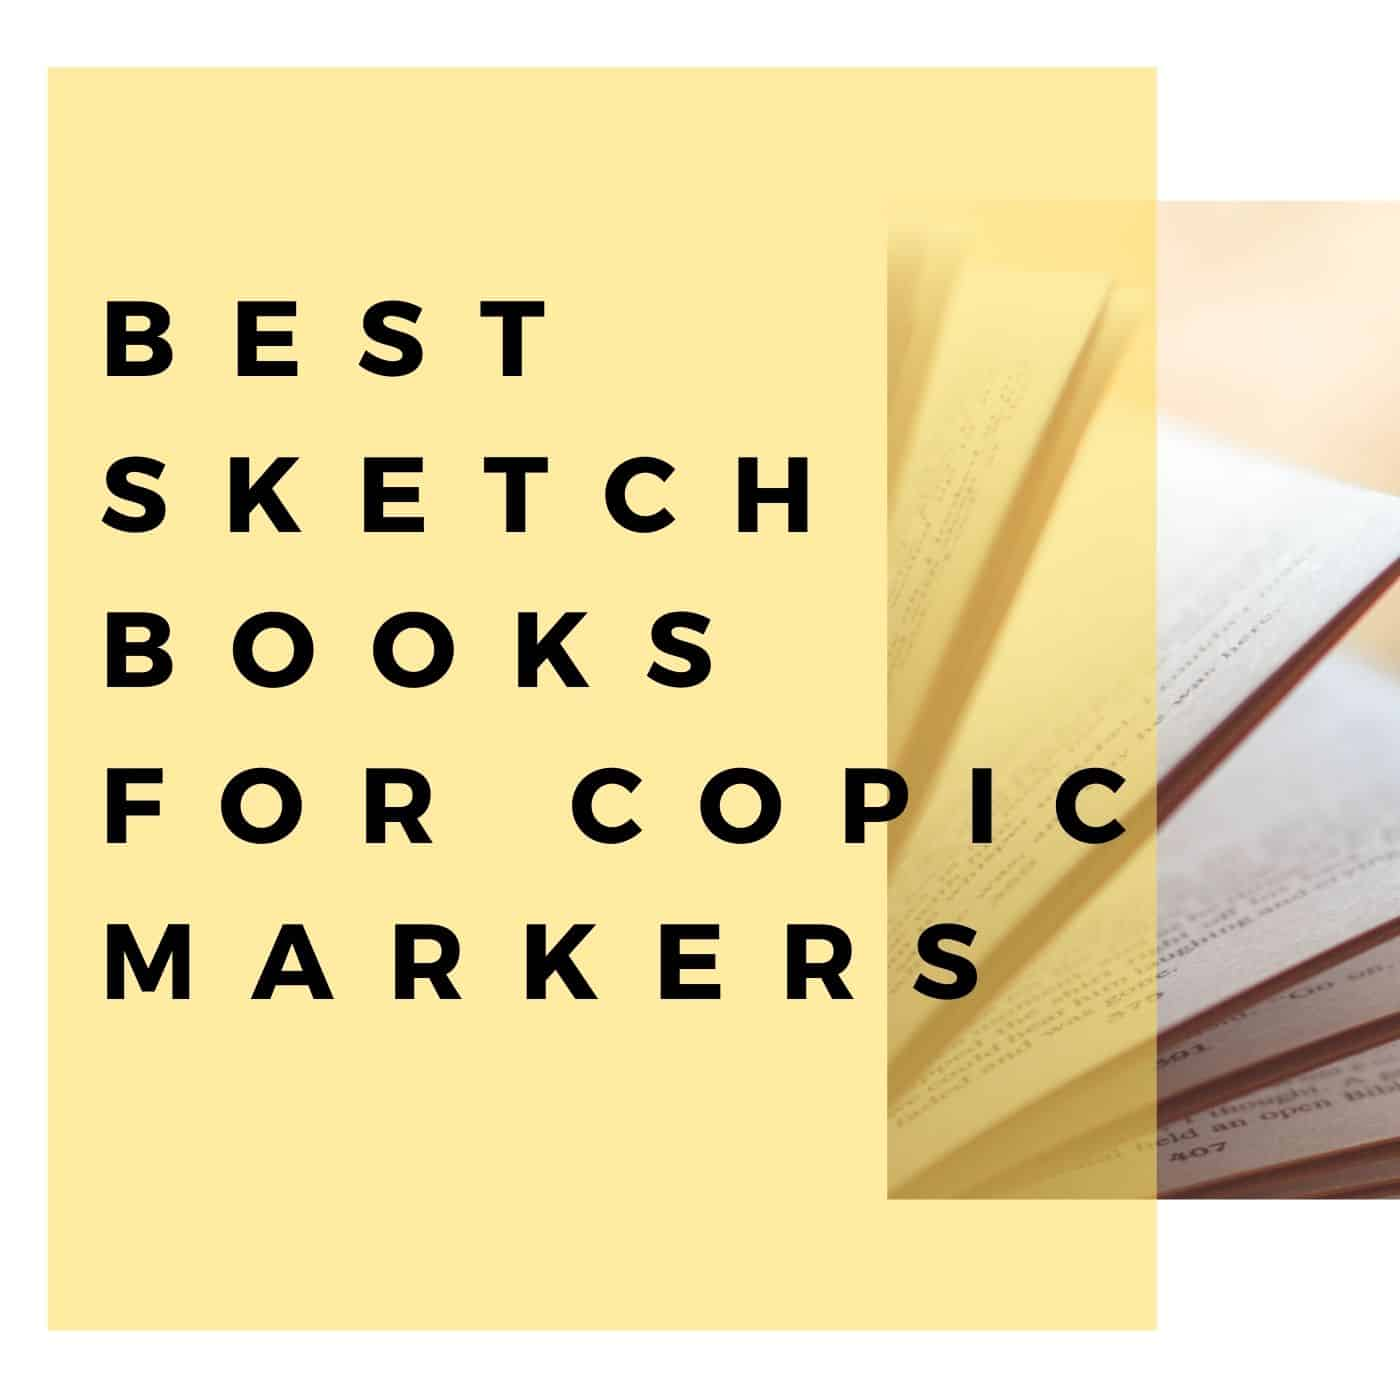 Best Sketchbooks for Copic Markers